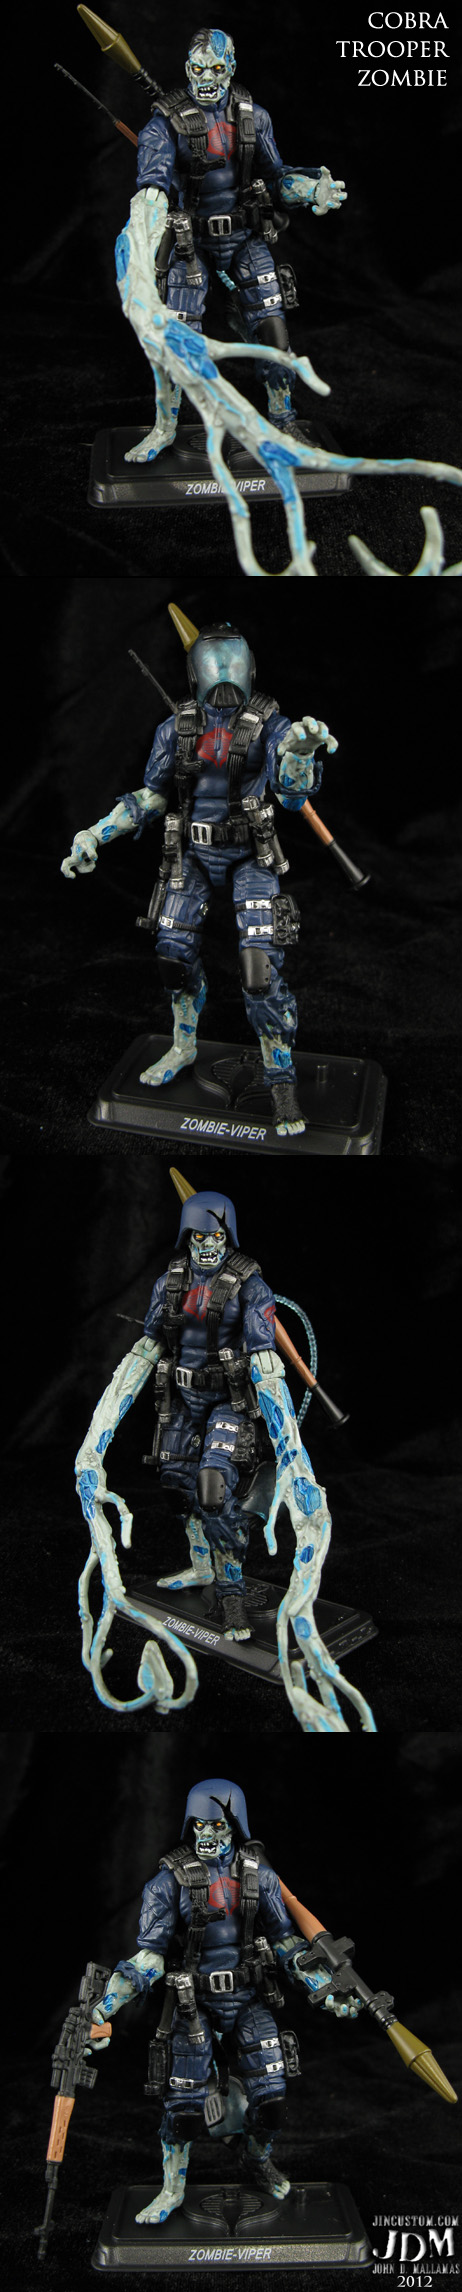 Custom Zombie Trooper GI Joe